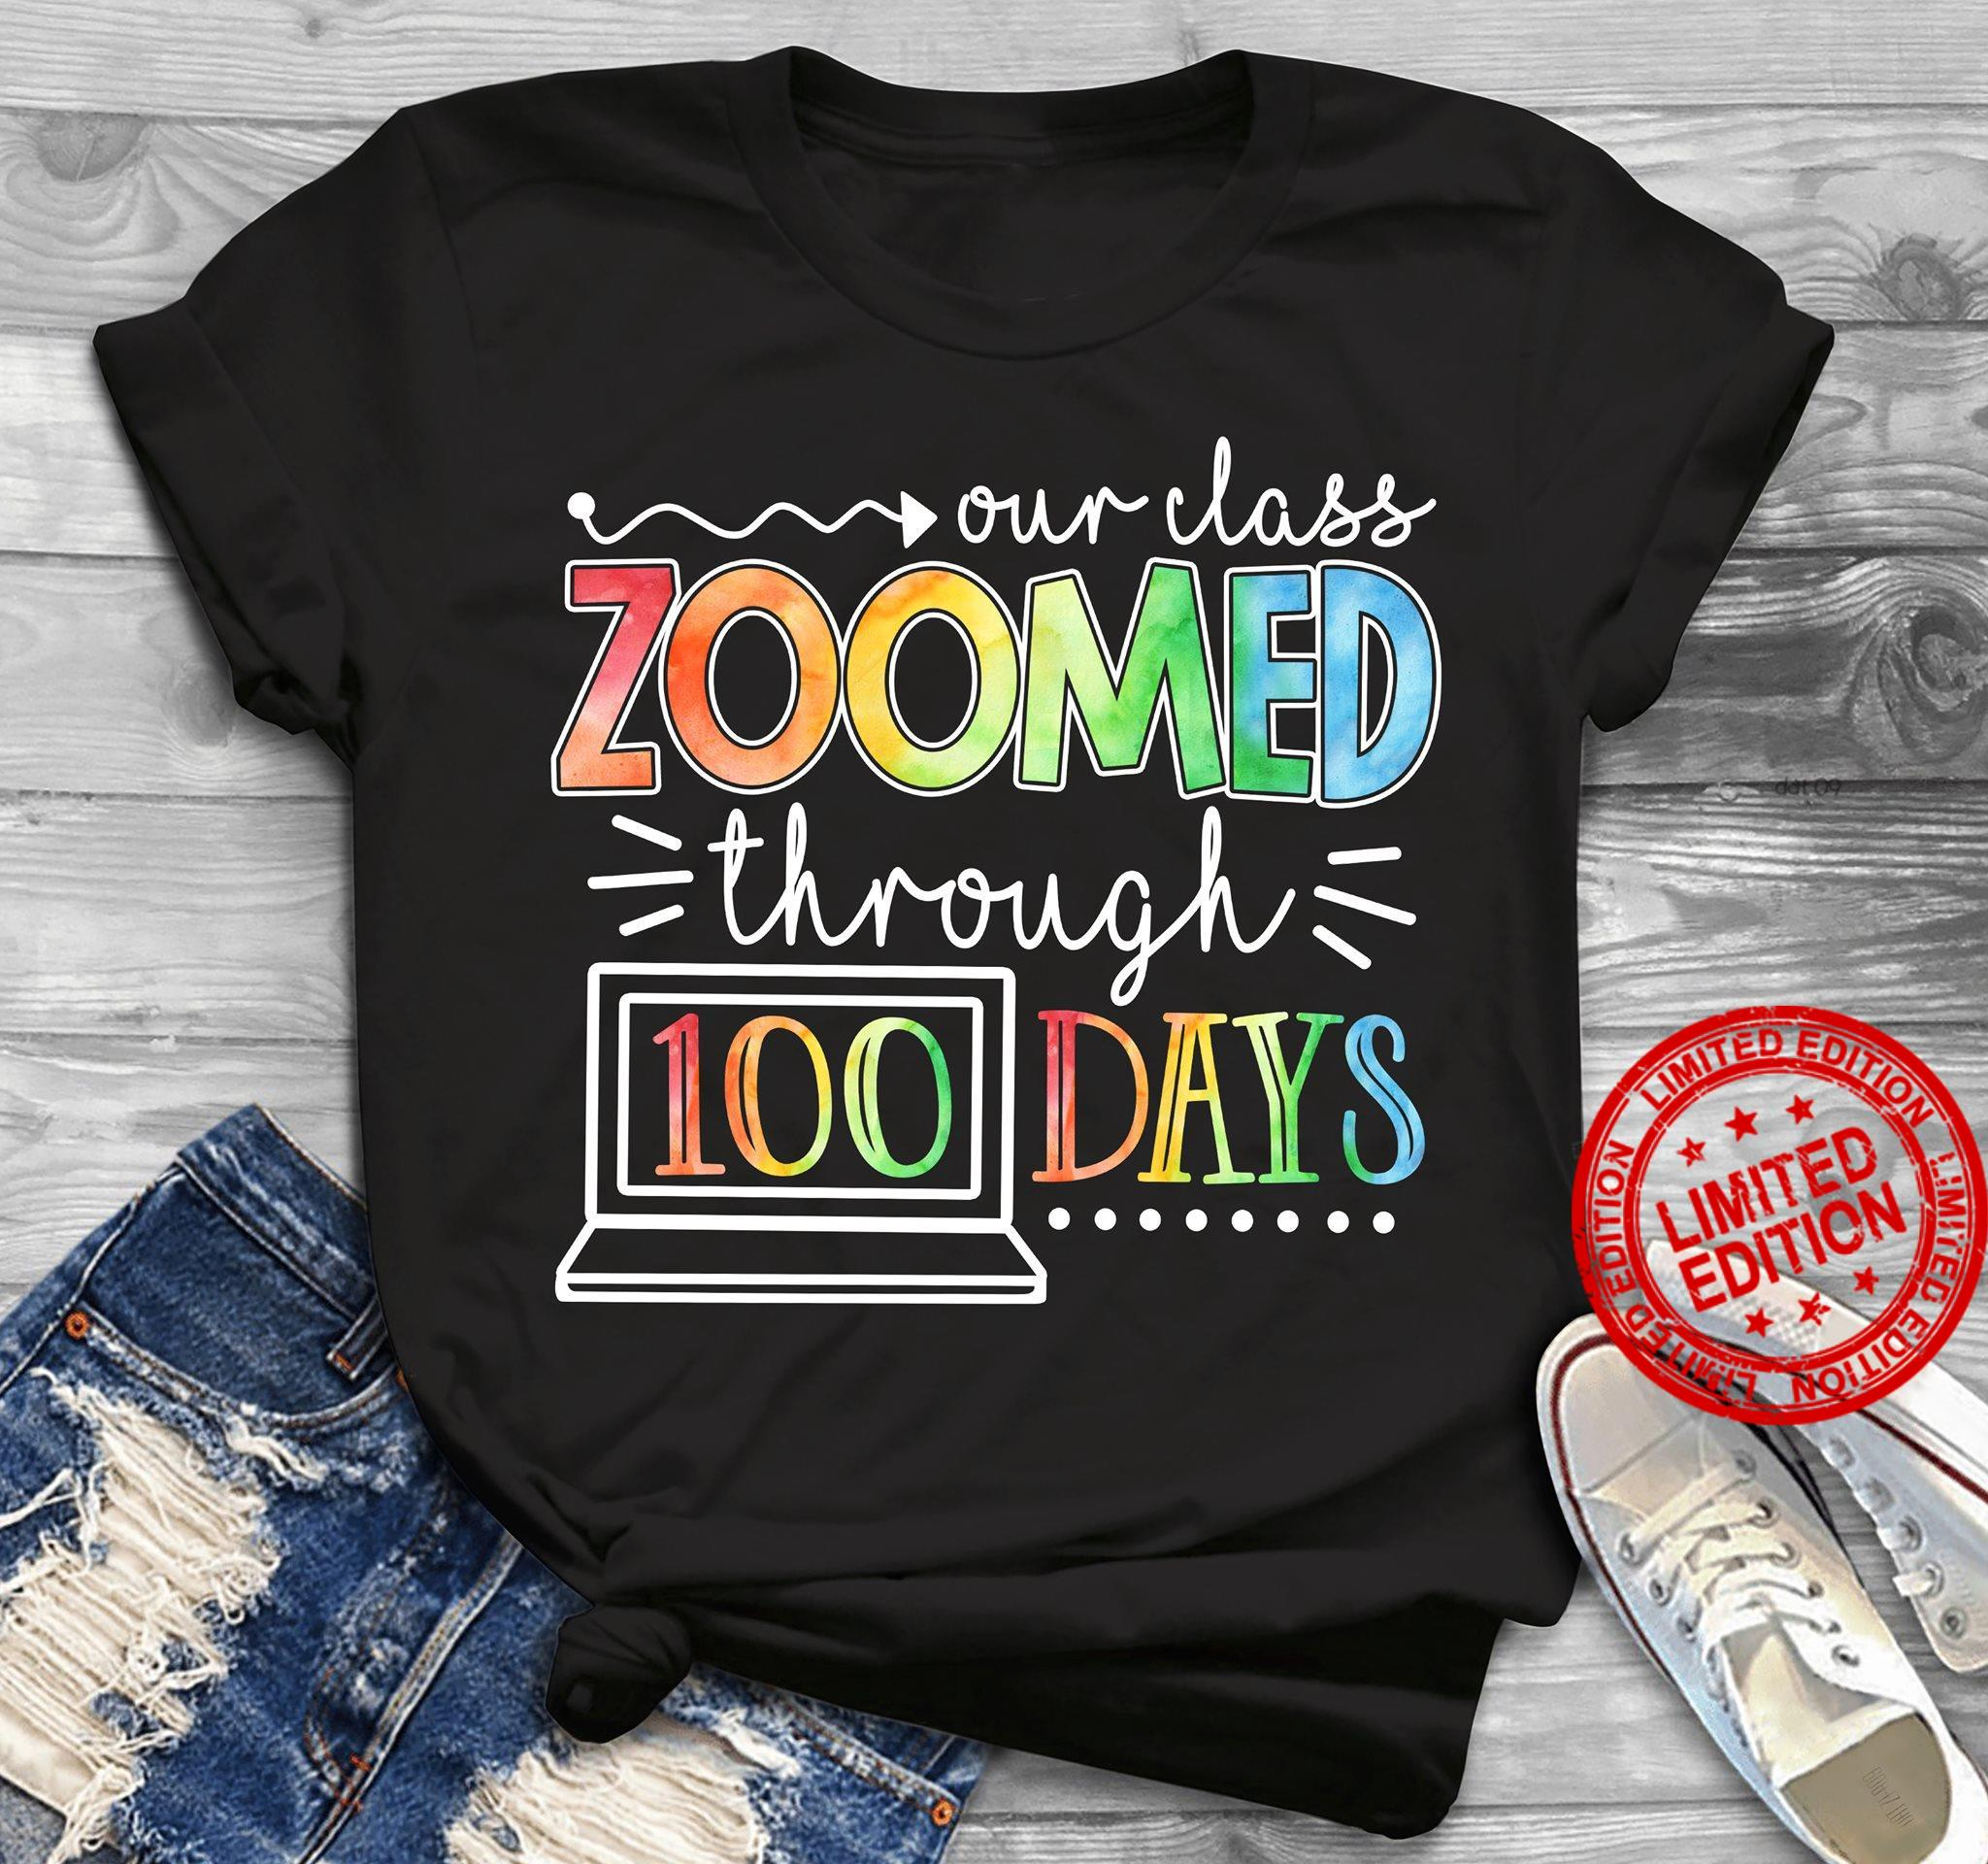 Our Class Zoomed Through 100 Days Shirt